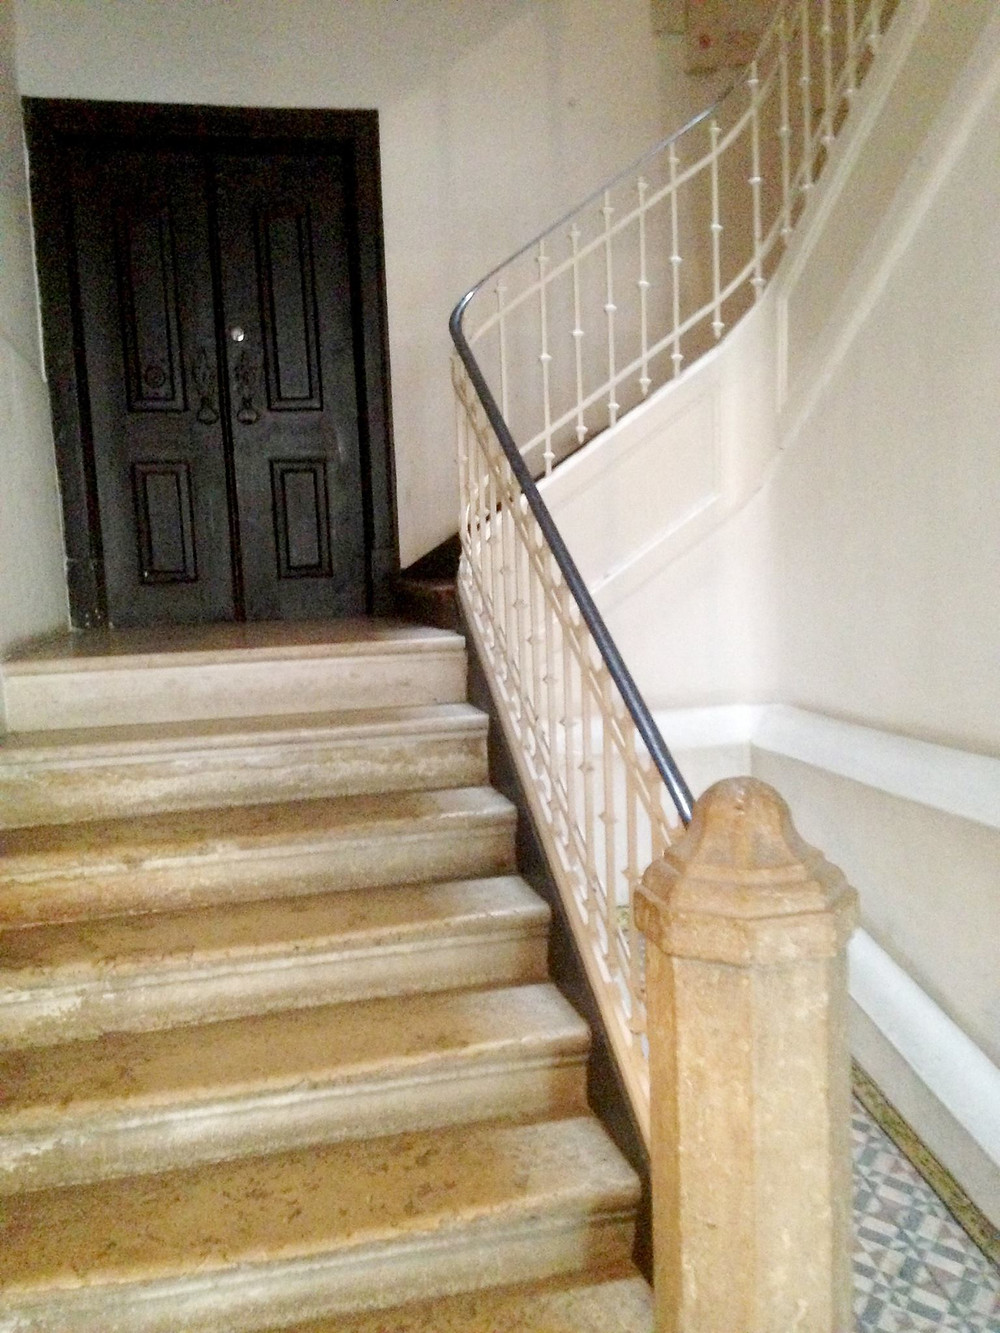 The 18th century staircase